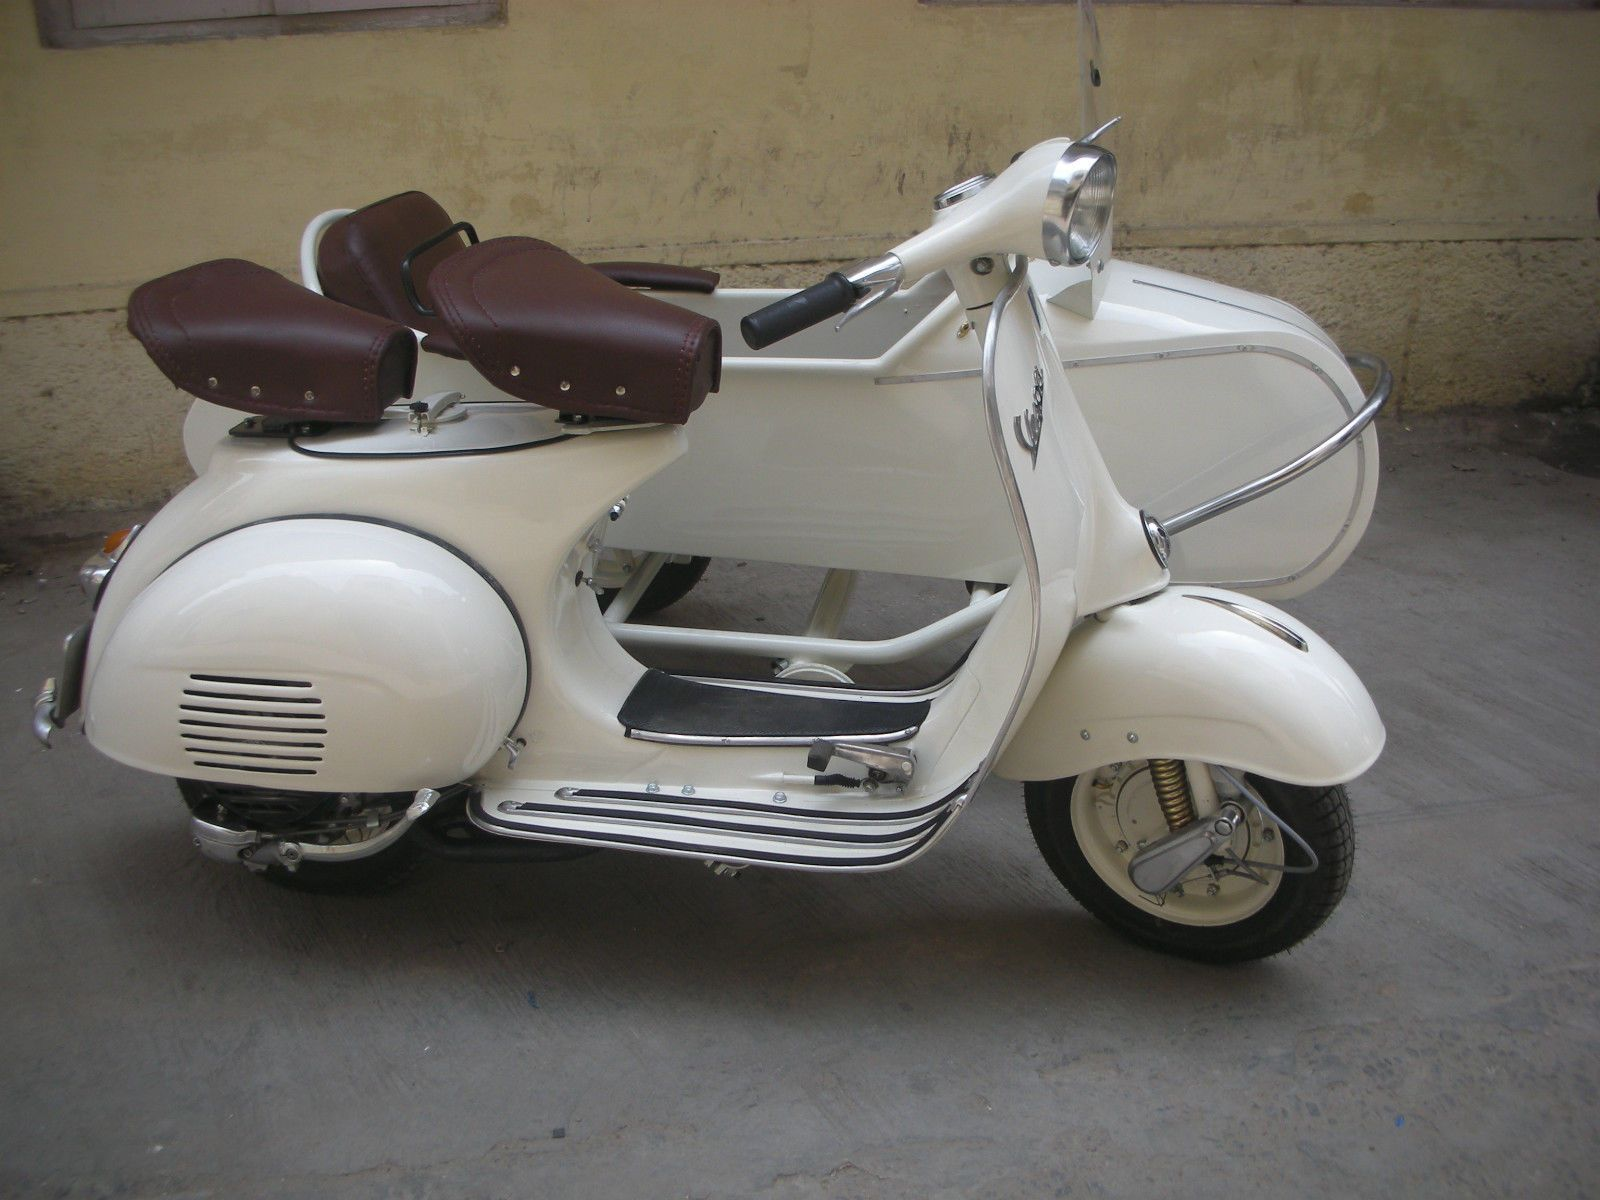 VESPA 1964 MODEL, NEW PX 150CC ENGINE WITH EURO SIDE CAR